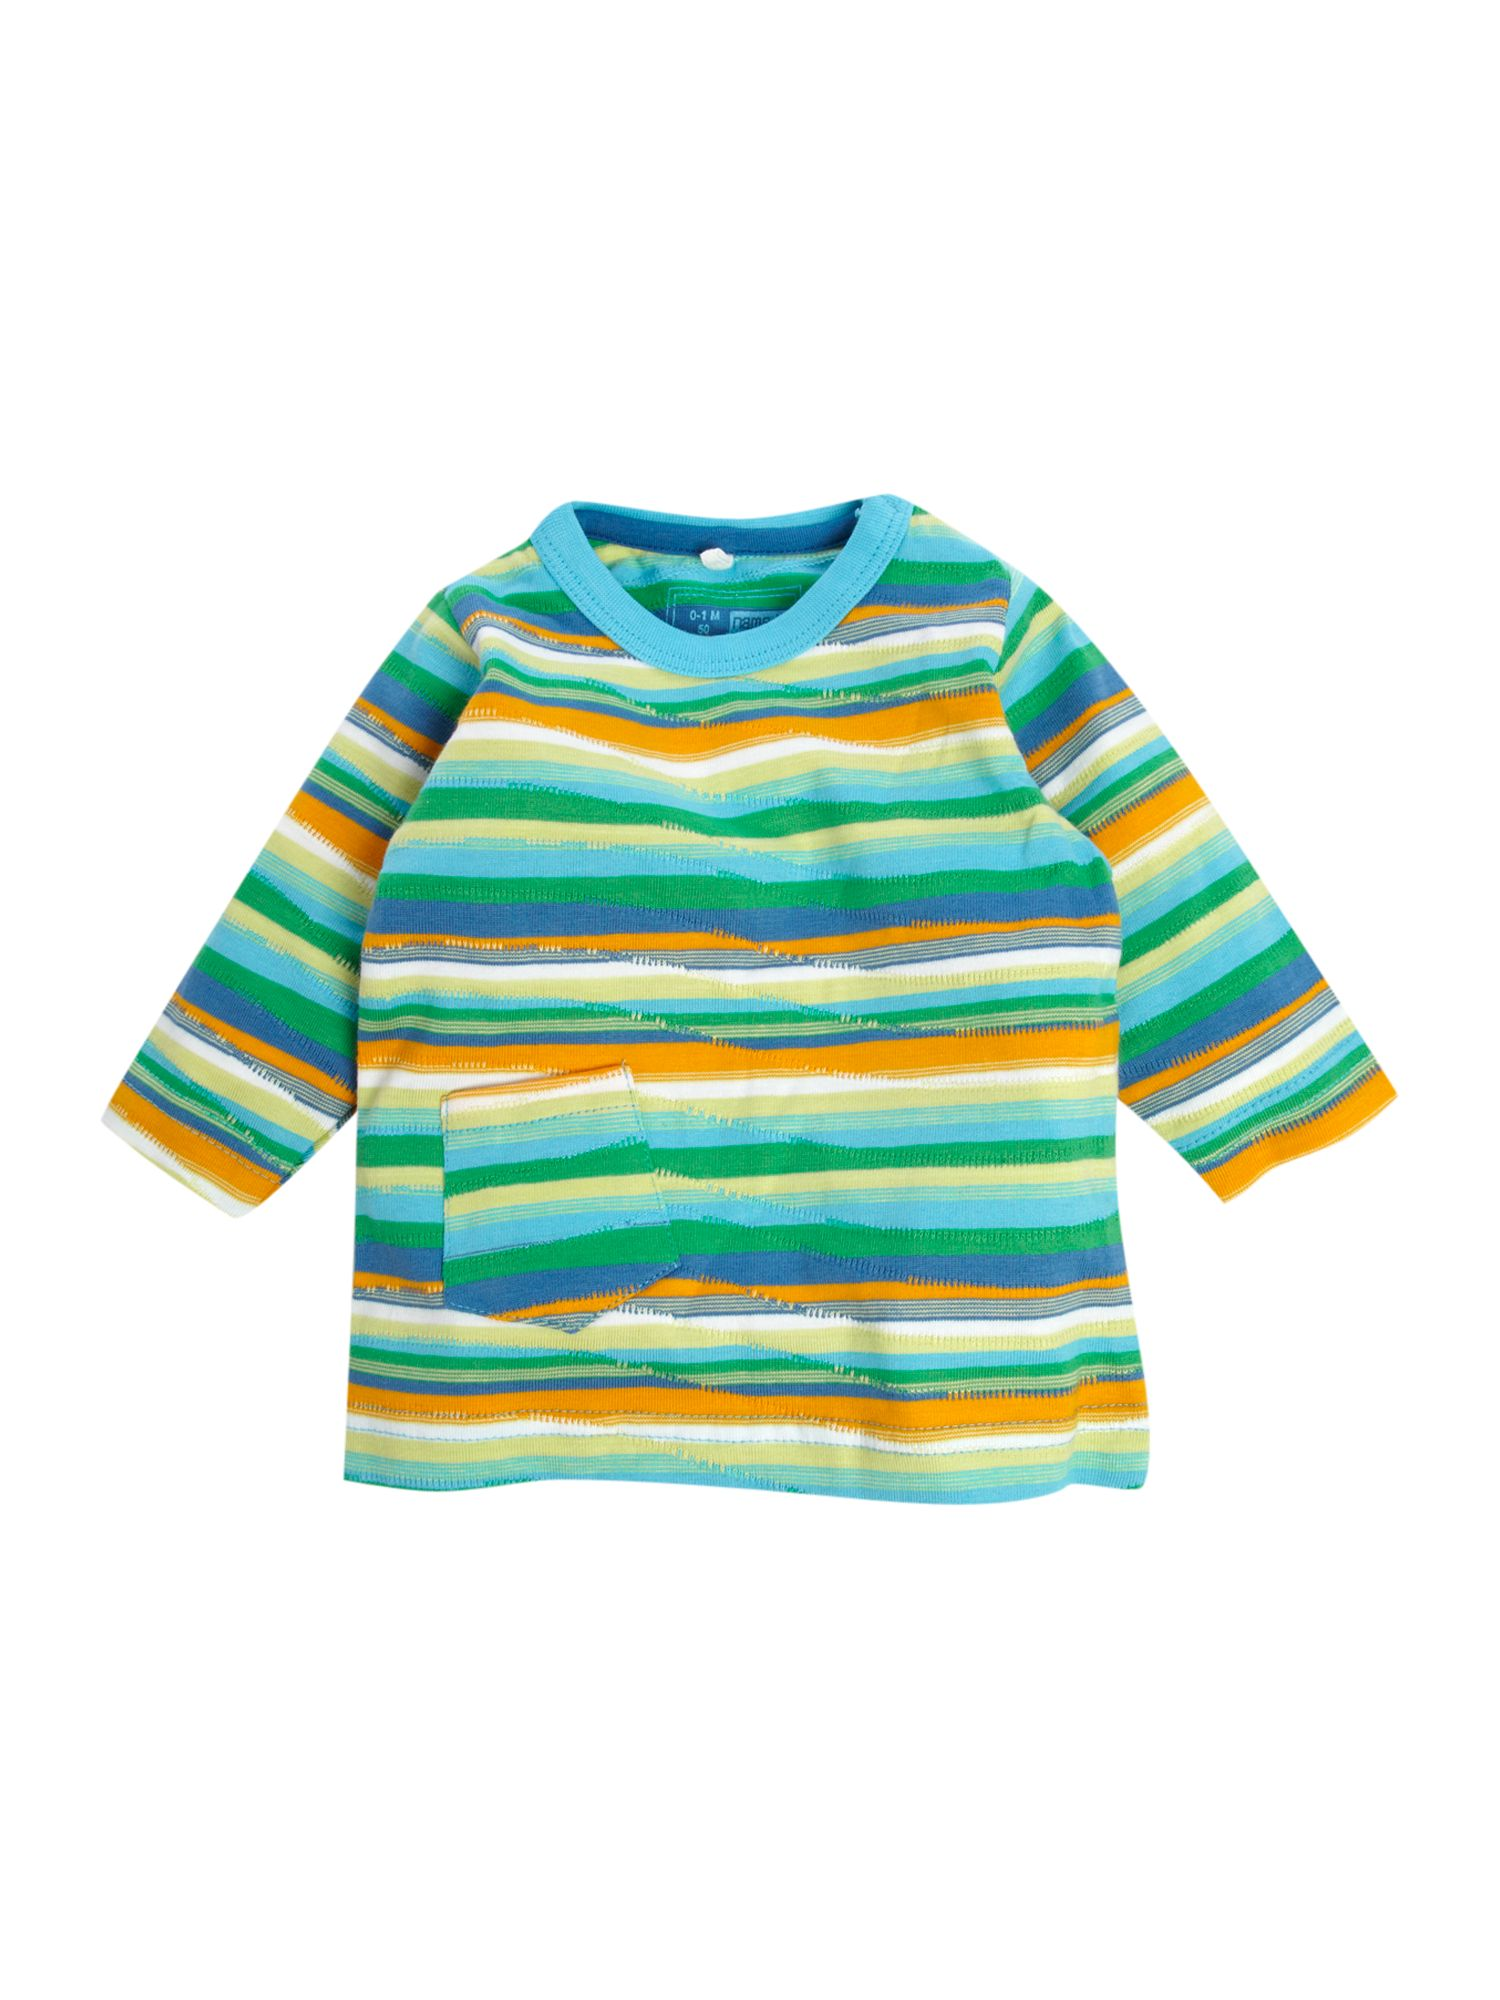 name it Short-sleeved stripedT-shirt, Turquoise product image